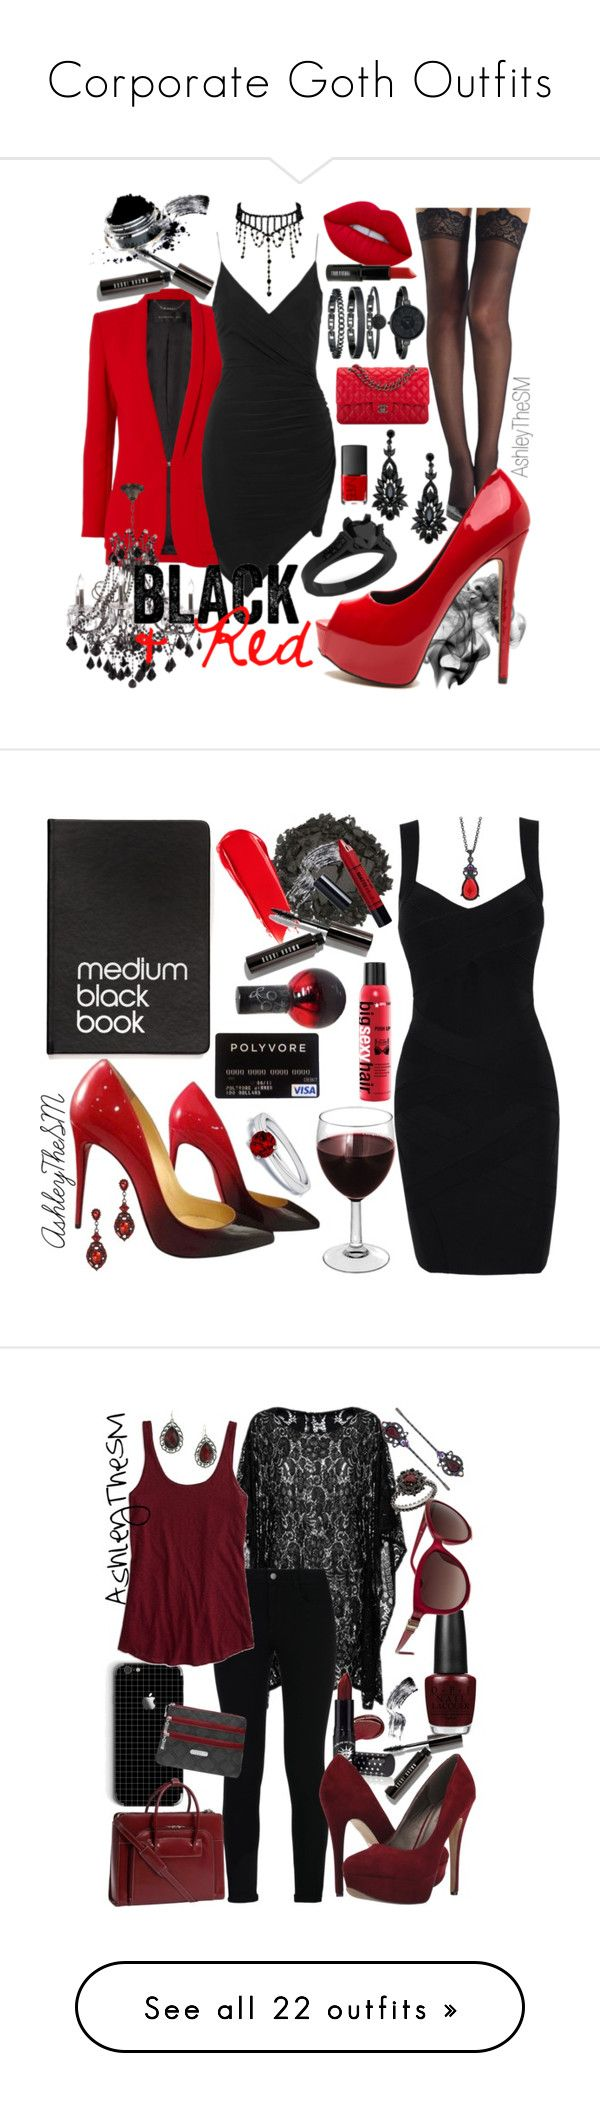 """""""Corporate Goth Outfits"""" by ashleythesm on Polyvore featuring Commando, Lime Crime, Barbara Bui, Bobbi Brown Cosmetics, Topshop, James R. Moder, Chanel, Anne Klein, NARS Cosmetics and Lord & Berry"""